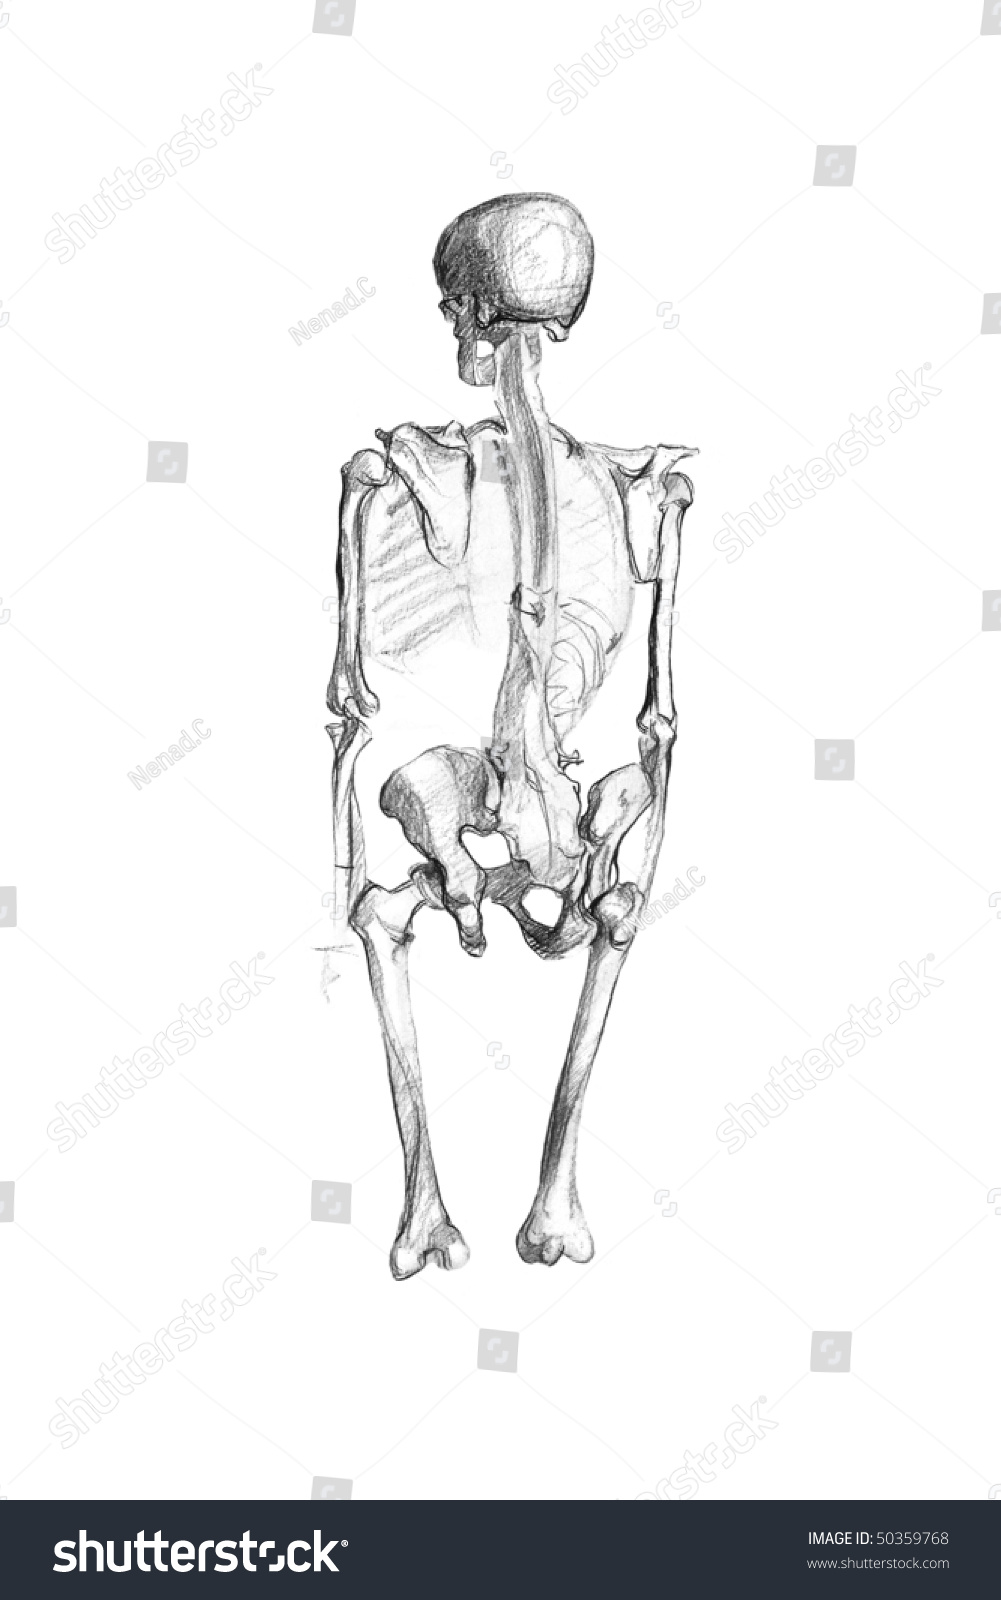 Royalty Free Stock Illustration Of Human Skeleton Original Drawing